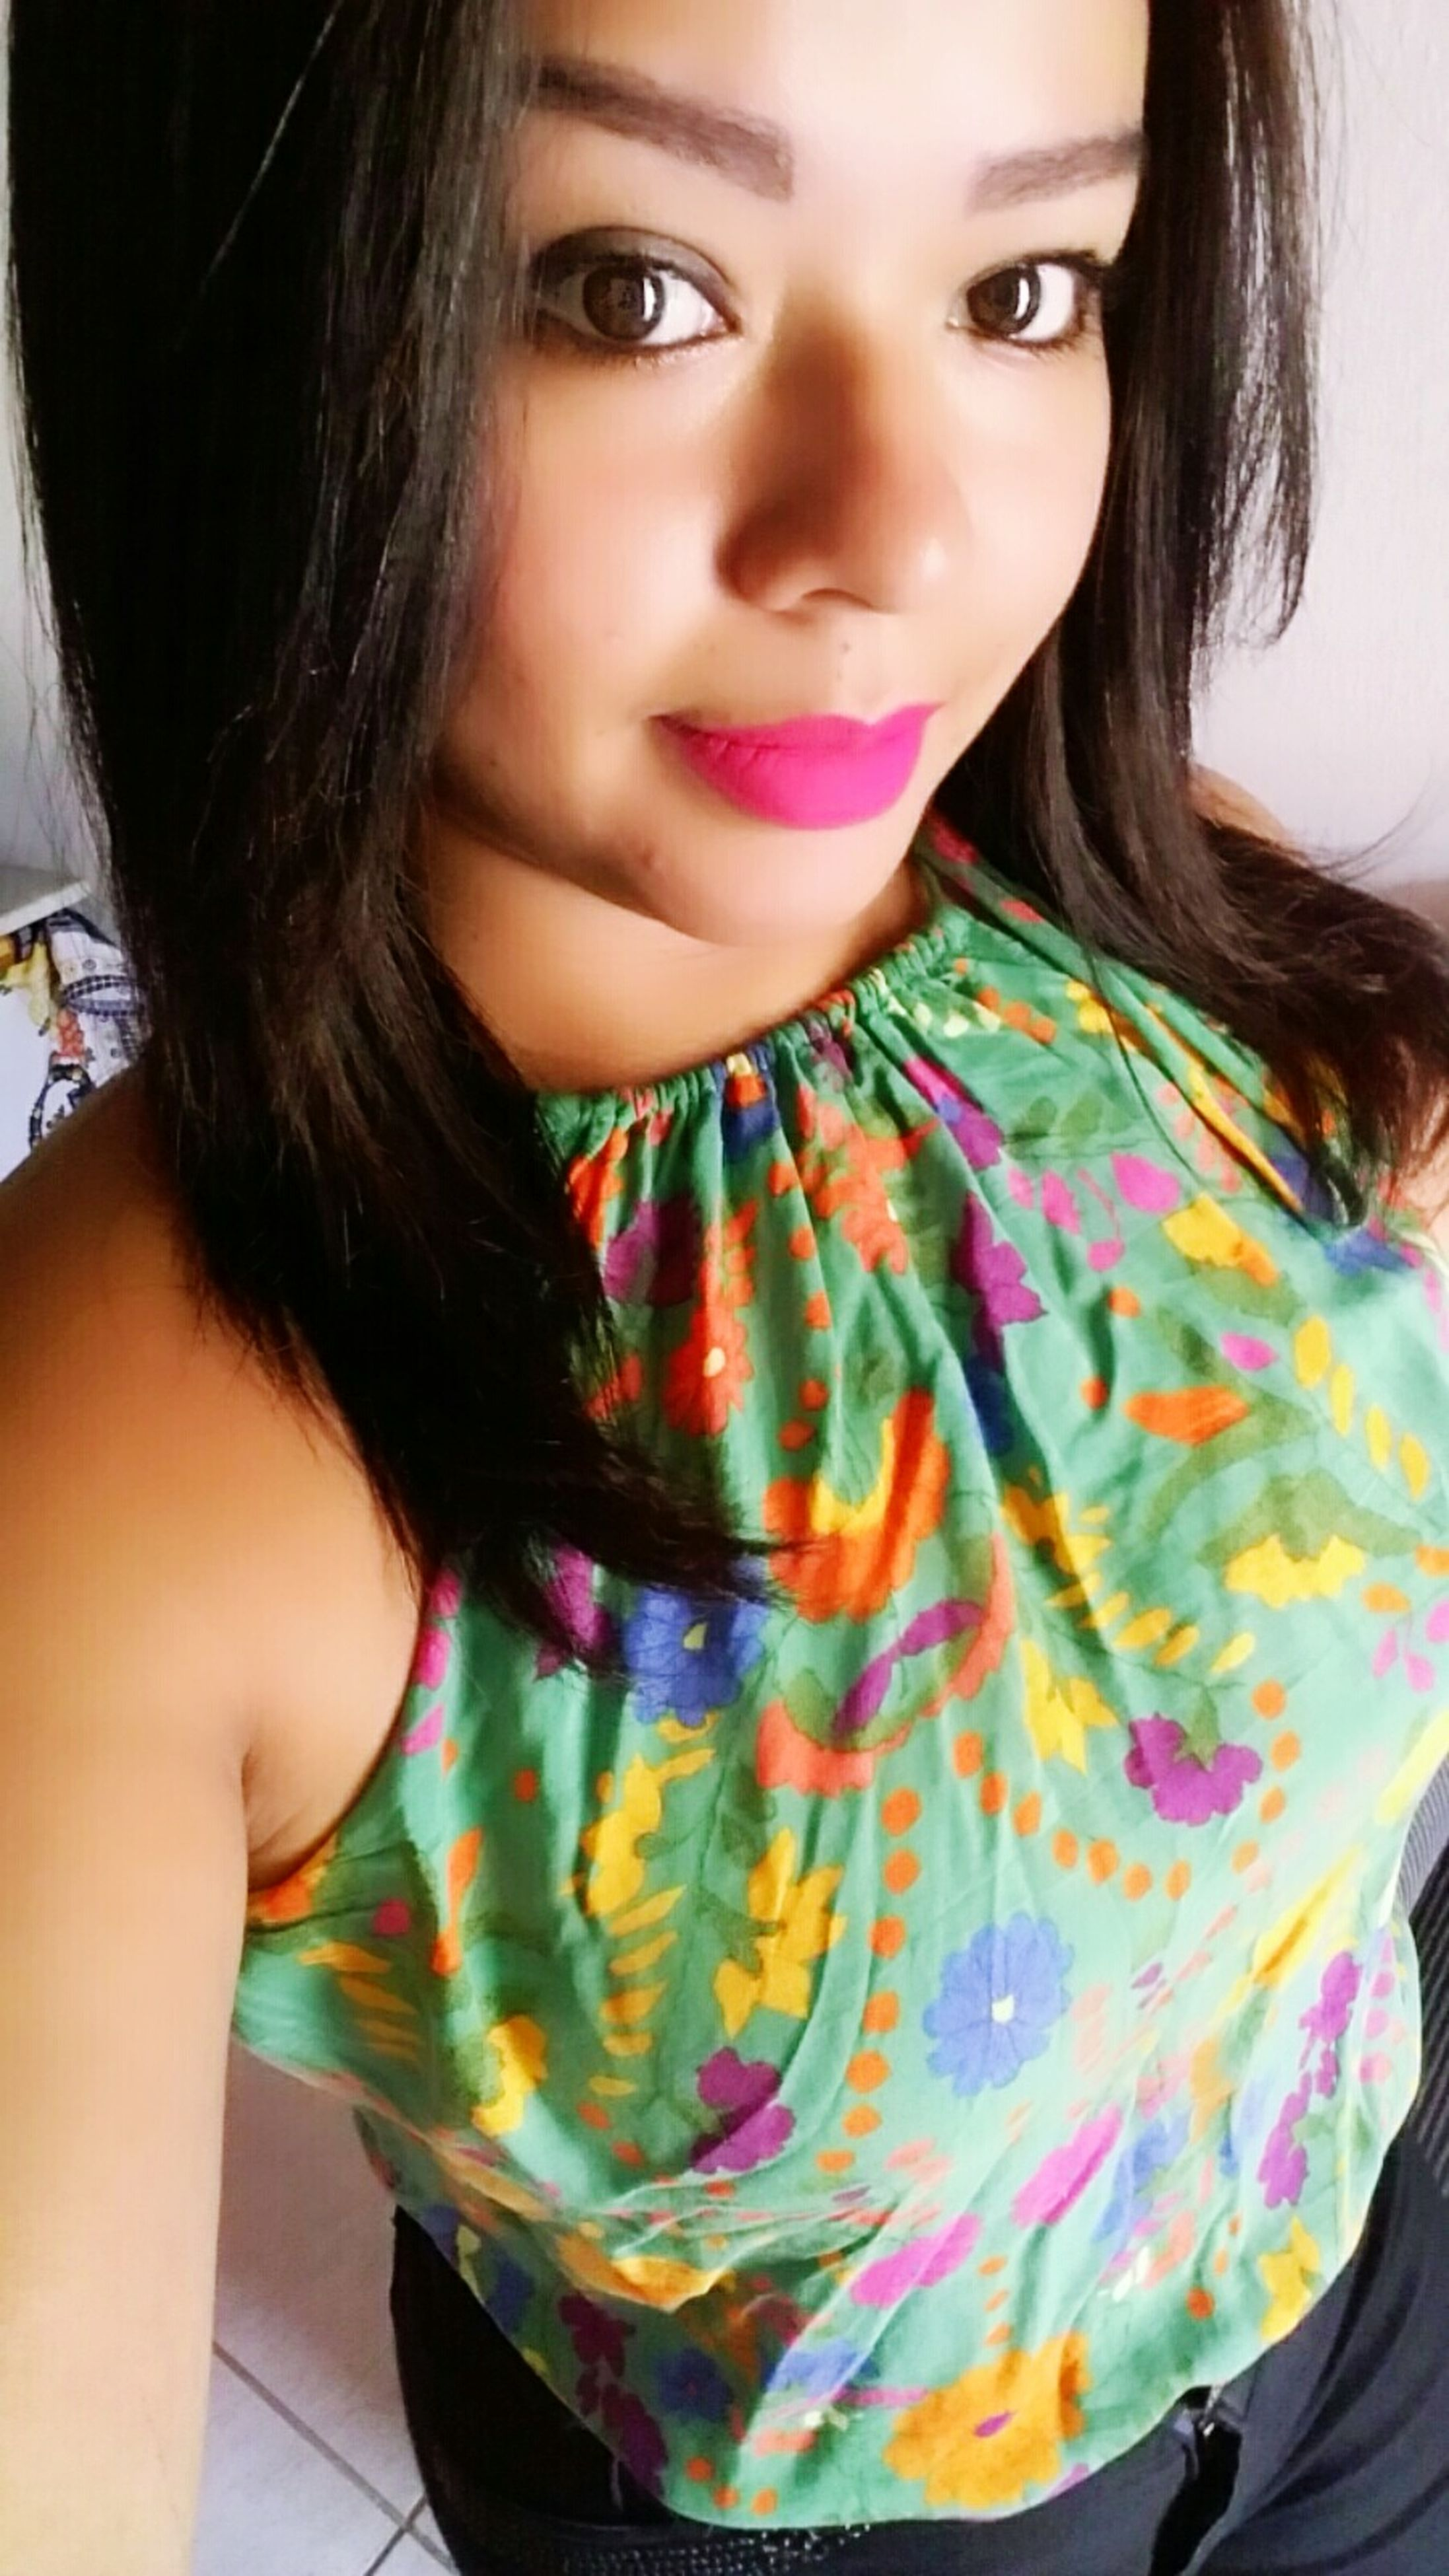 multi colored, portrait, looking at camera, one person, real people, women, only women, beautiful woman, one woman only, fashion, lifestyles, front view, beauty, people, adult, indoors, close-up, human body part, adults only, one young woman only, young adult, human lips, day